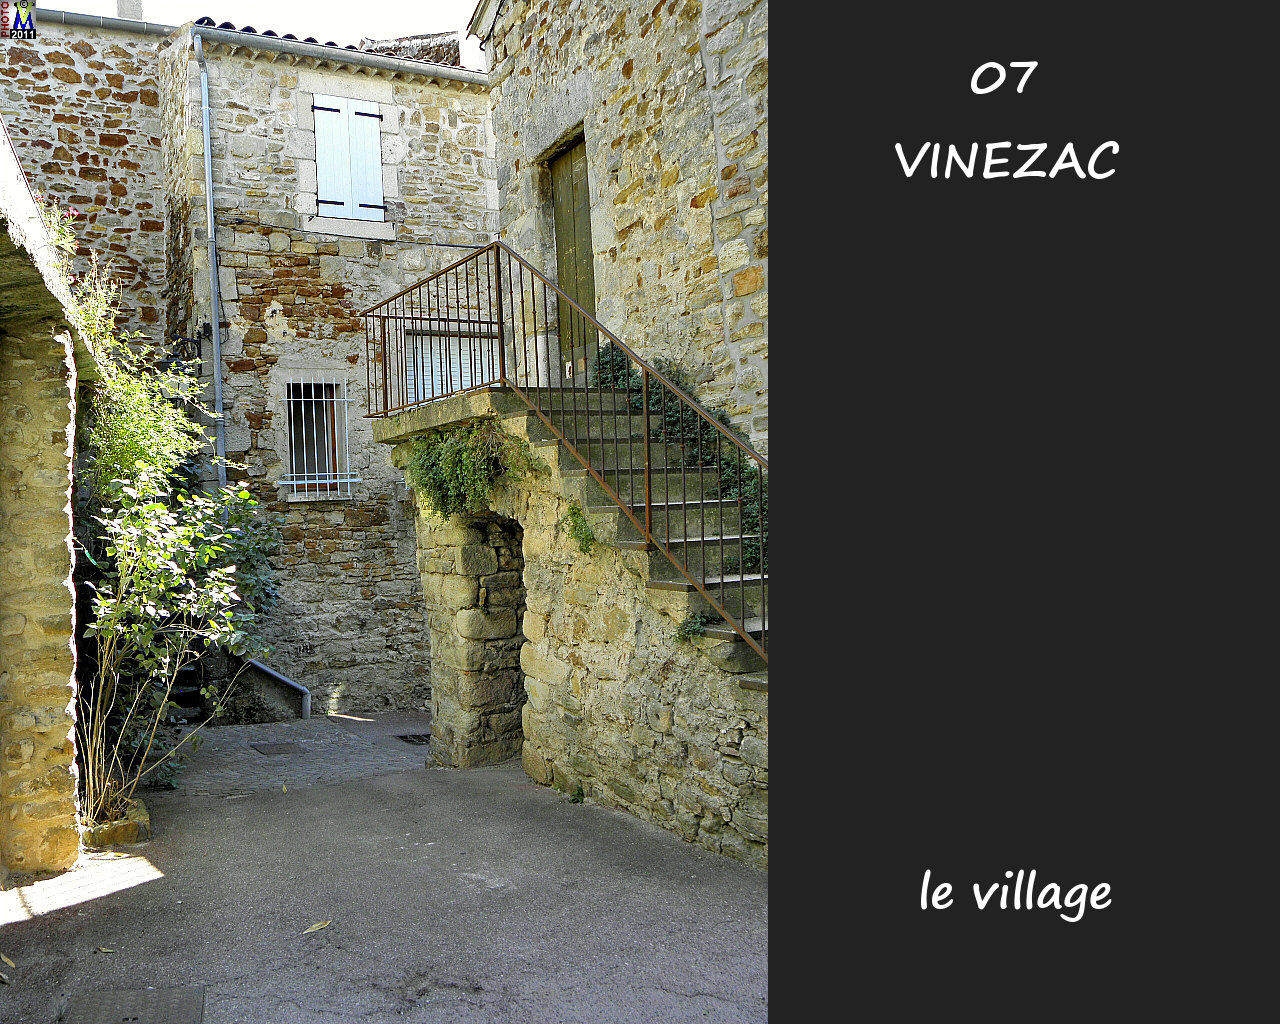 07VINEZAC_village_168.jpg